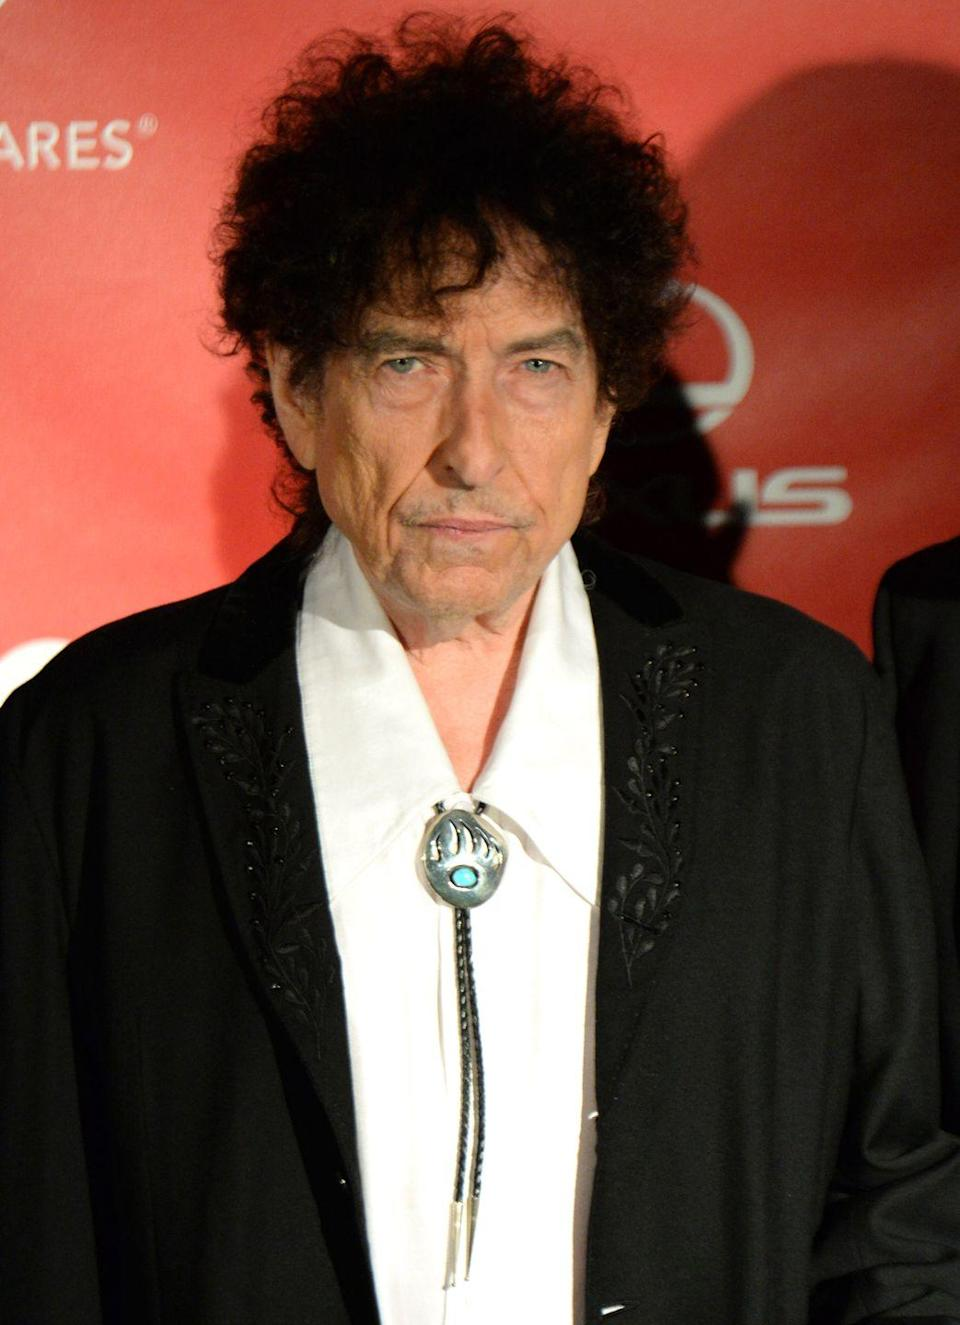 <p>Bob Dylan attends the 25th anniversary MusiCares 2015 Person Of The Year Gala on February 6, 2015 in Los Angeles.</p>